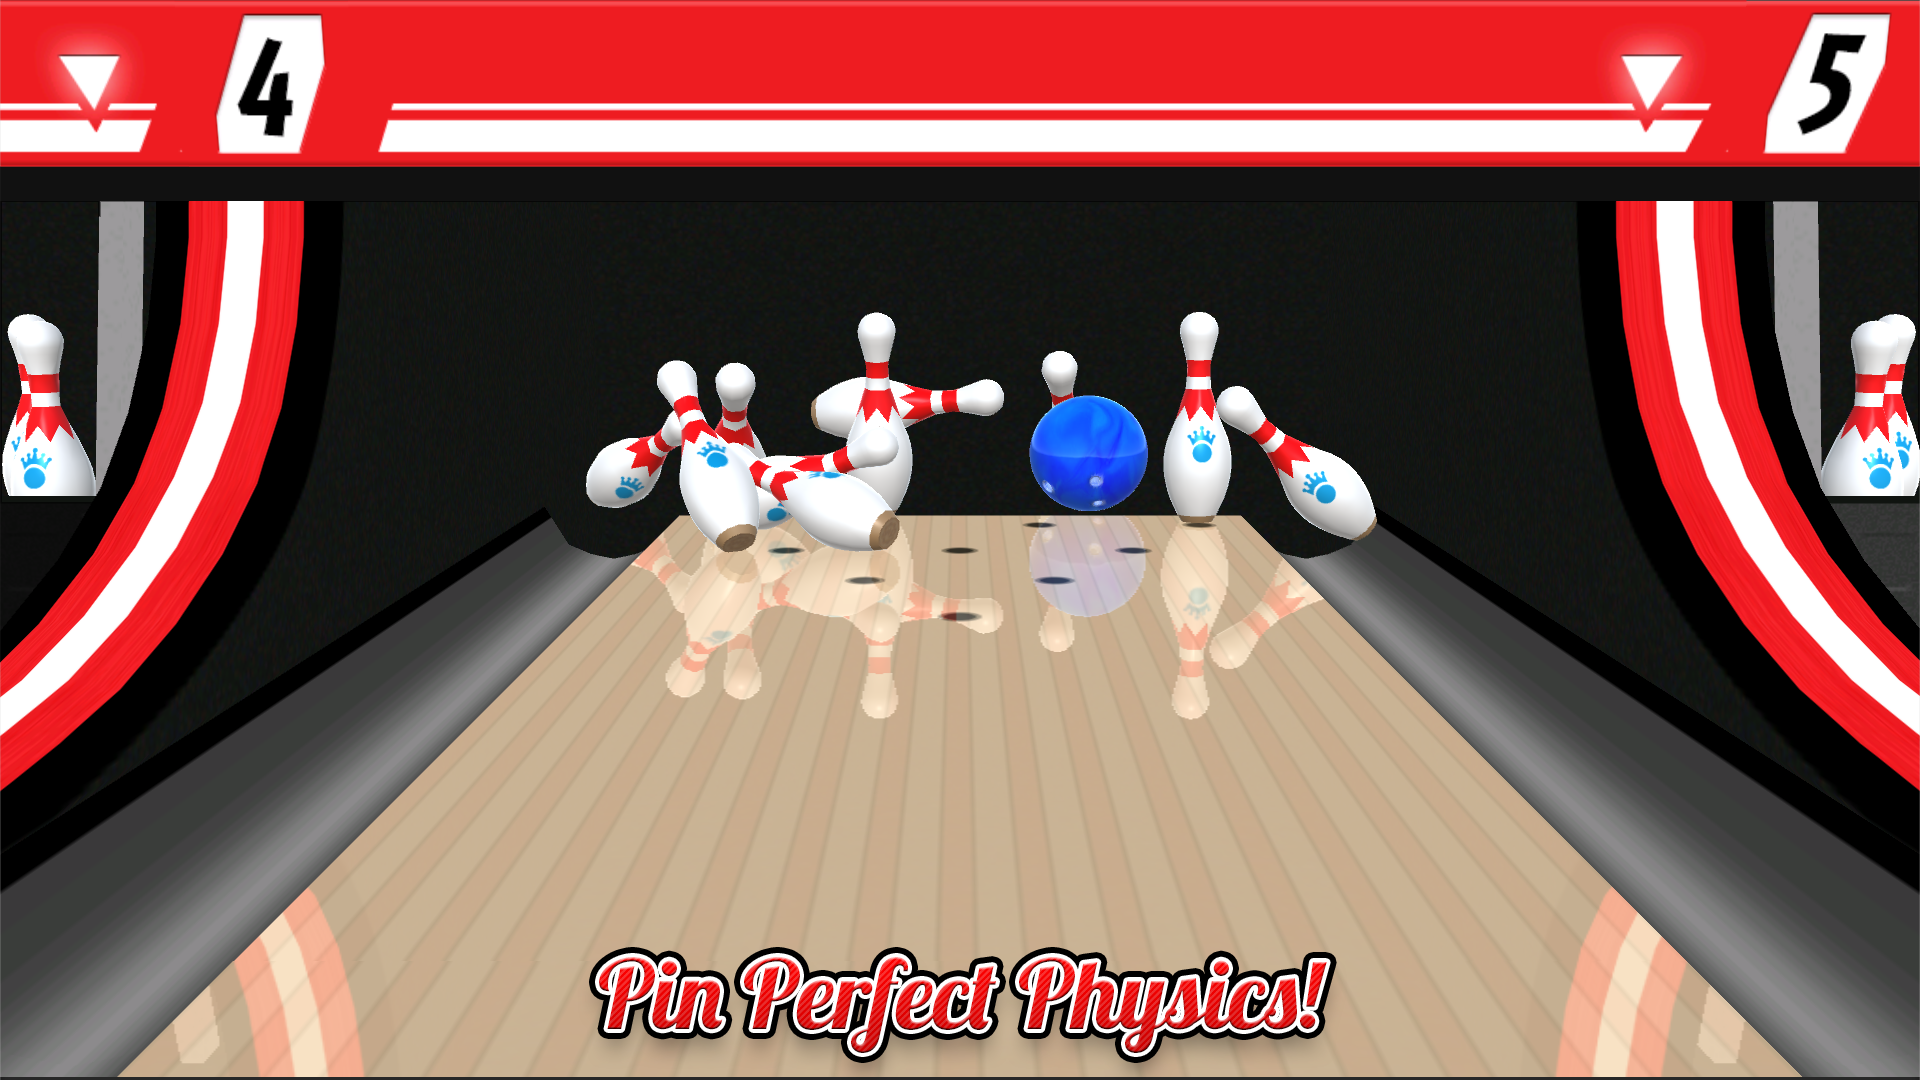 Strike! Ten Pin Bowling screenshot 12